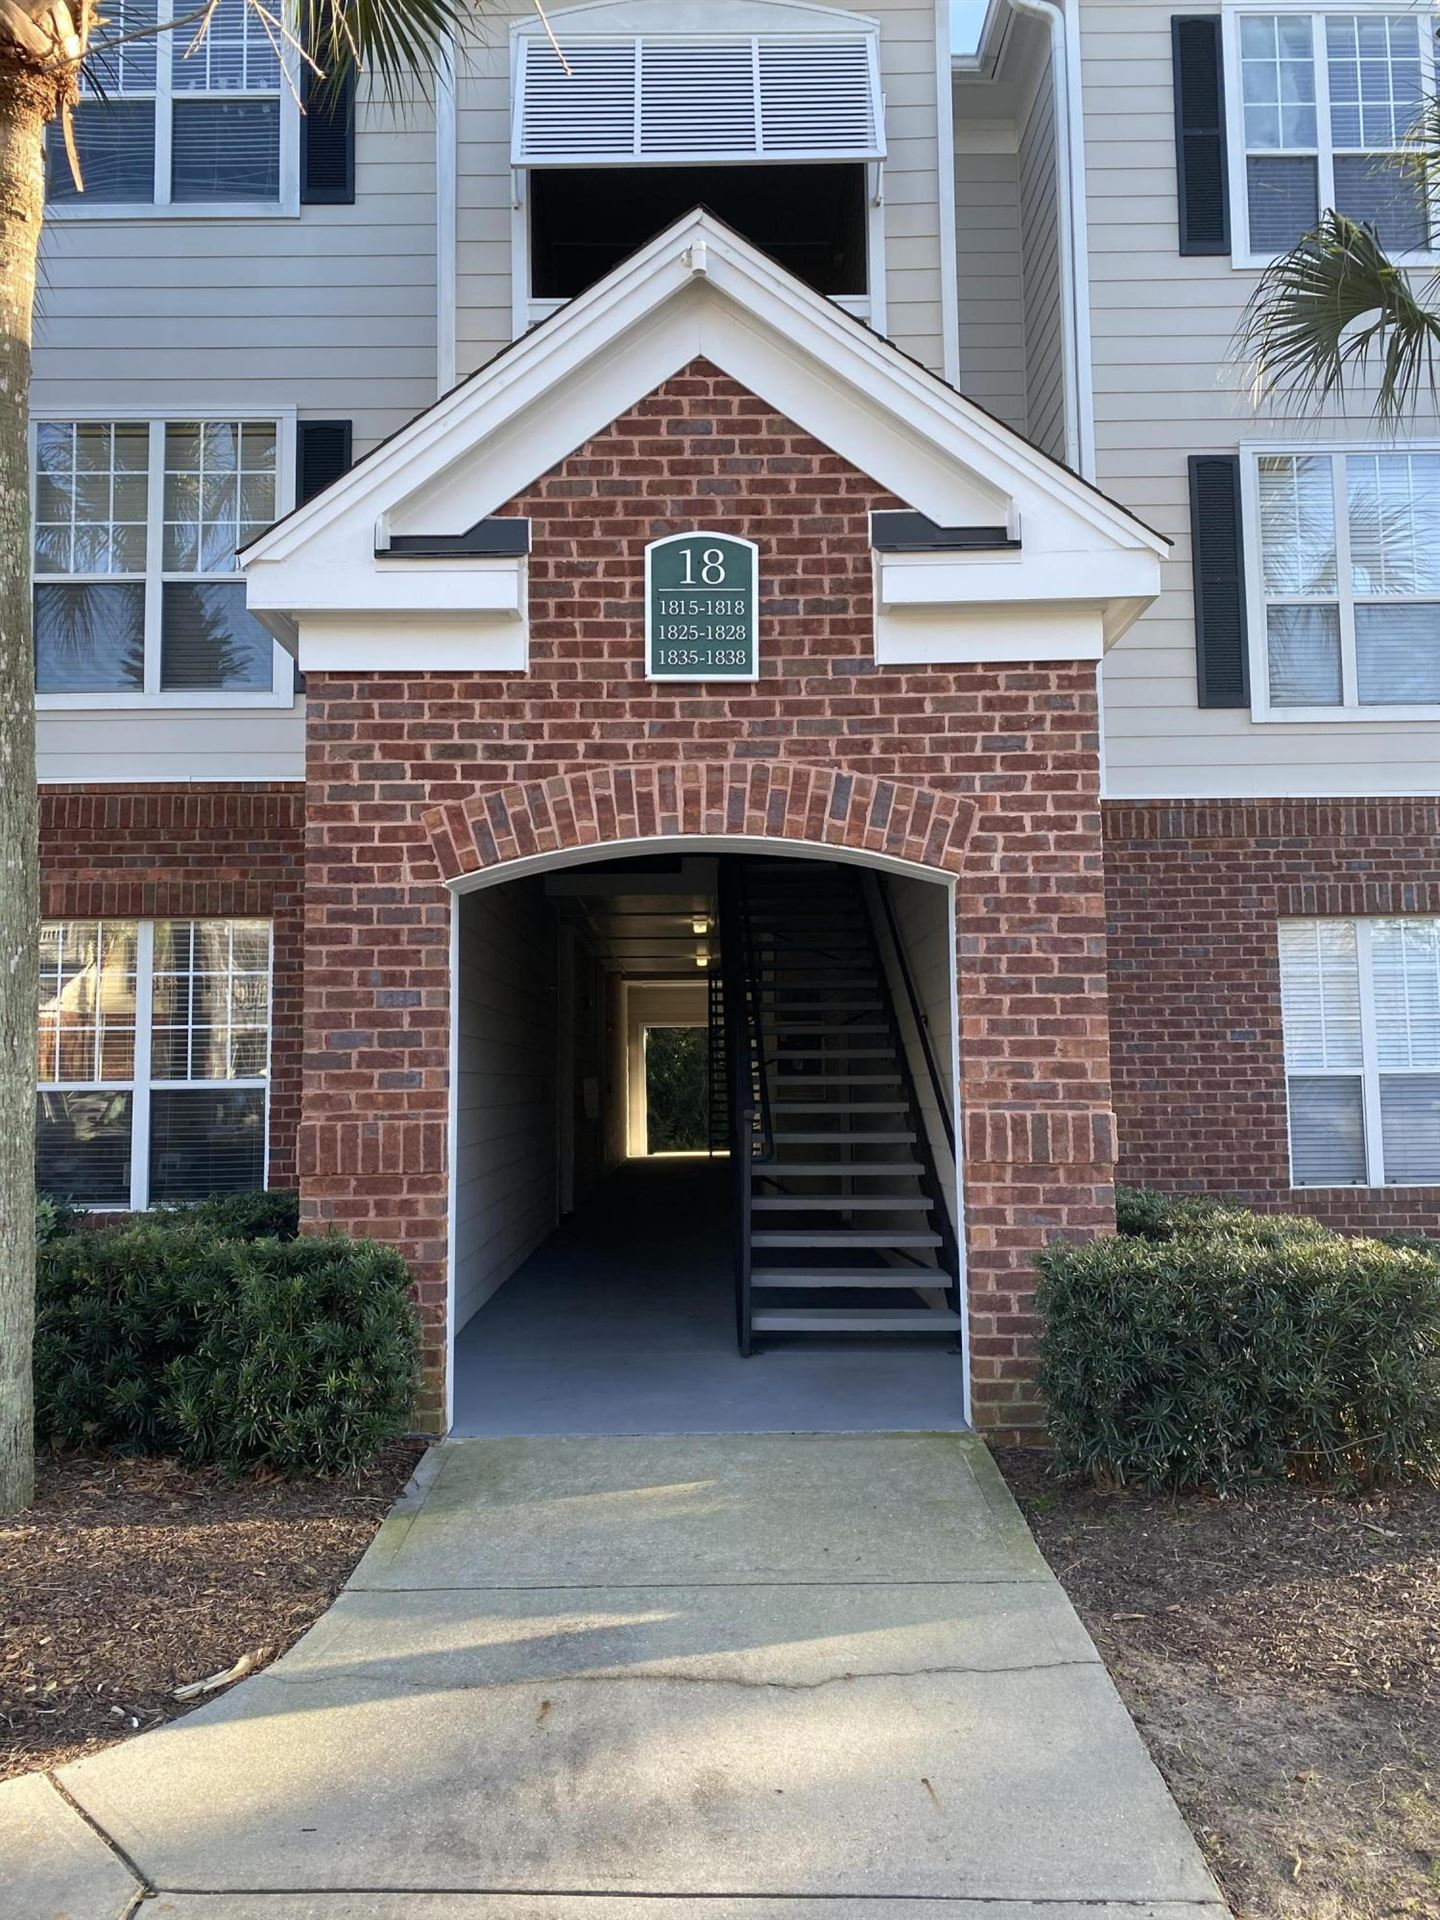 Photo of 45 Sycamore Avenue #1818, Charleston, SC 29407 (MLS # 21002165)